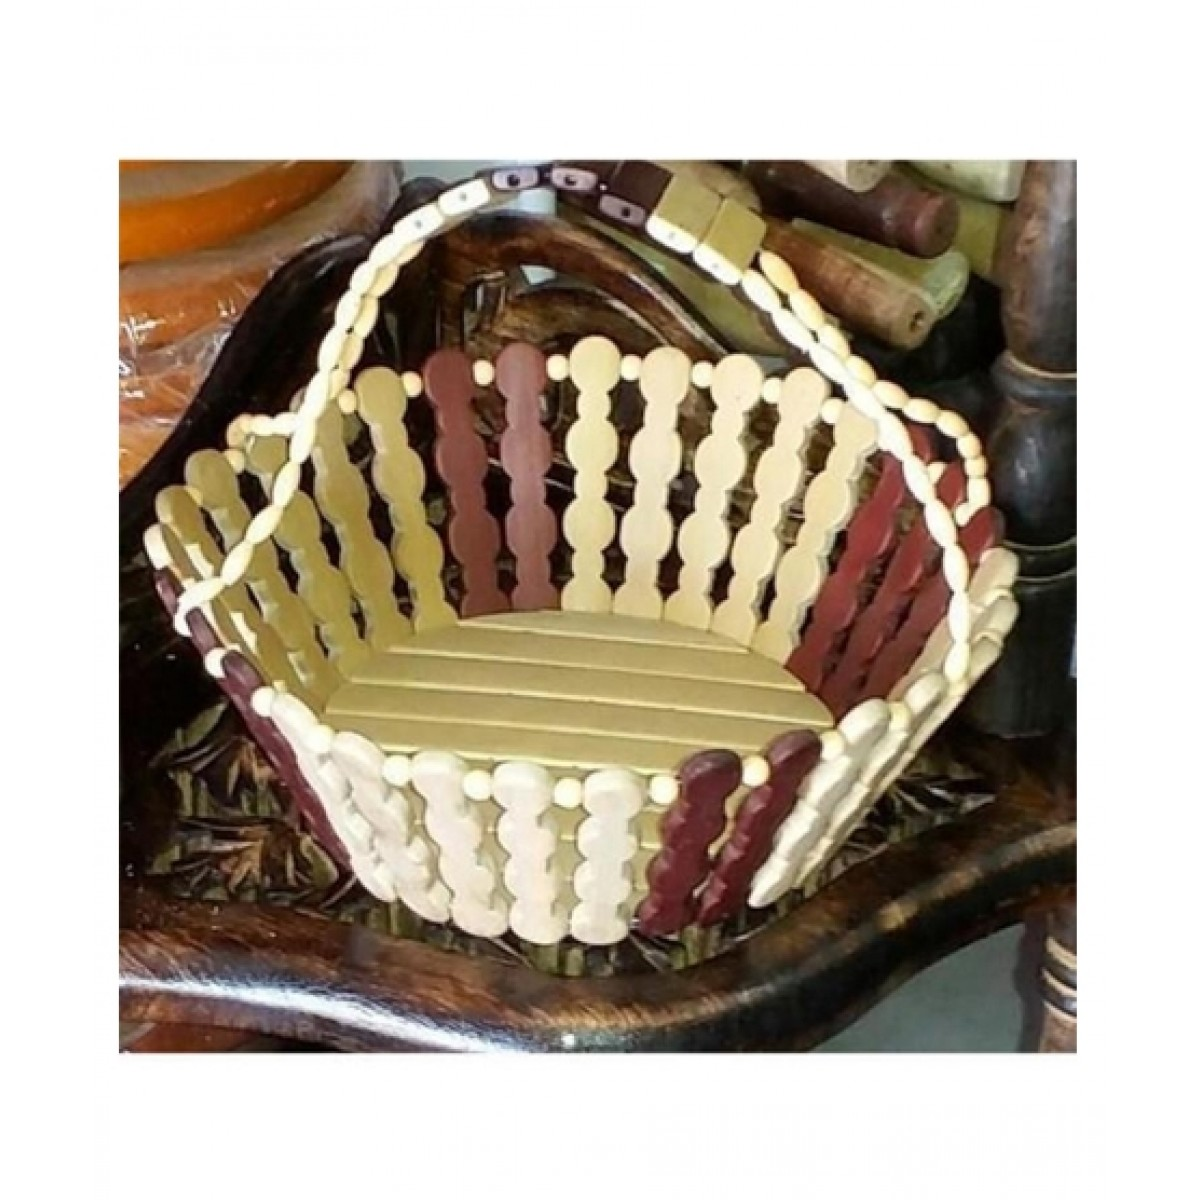 Subkuch Stylish Wooden Basket Brown And White (1134)